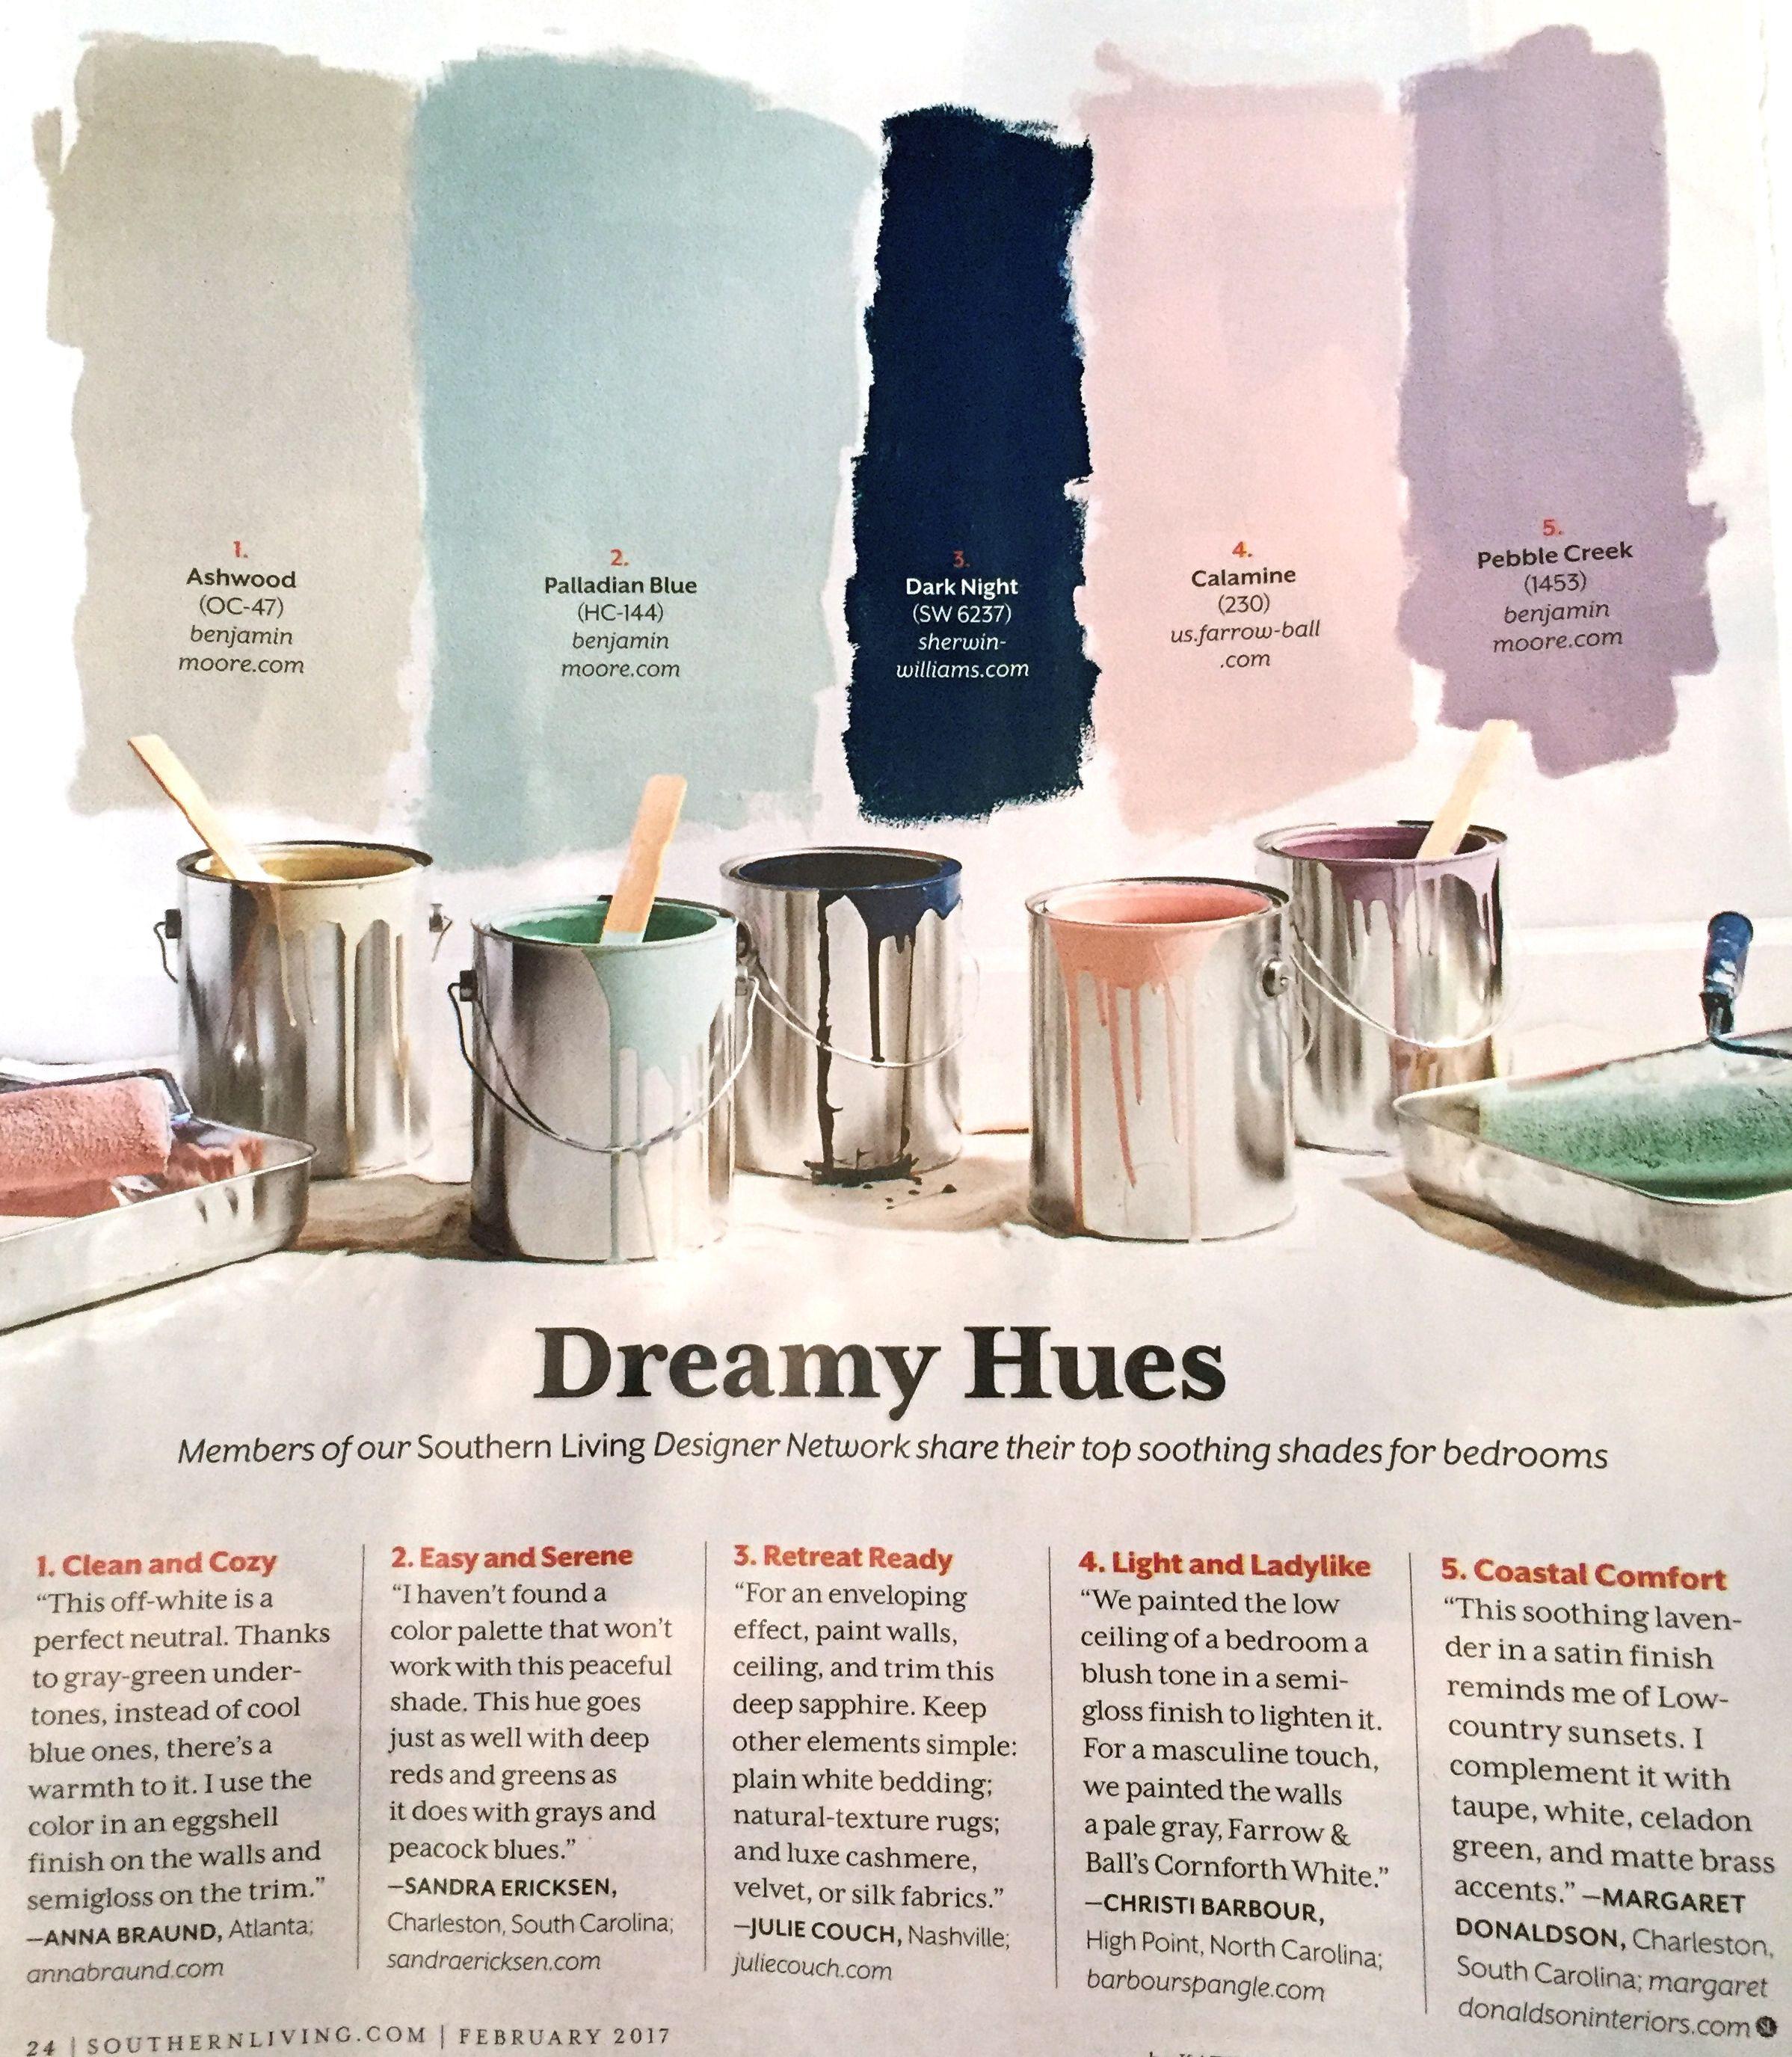 Paint Colors With Cult Followings 10 Picks From The: Dreamy Hues Palette